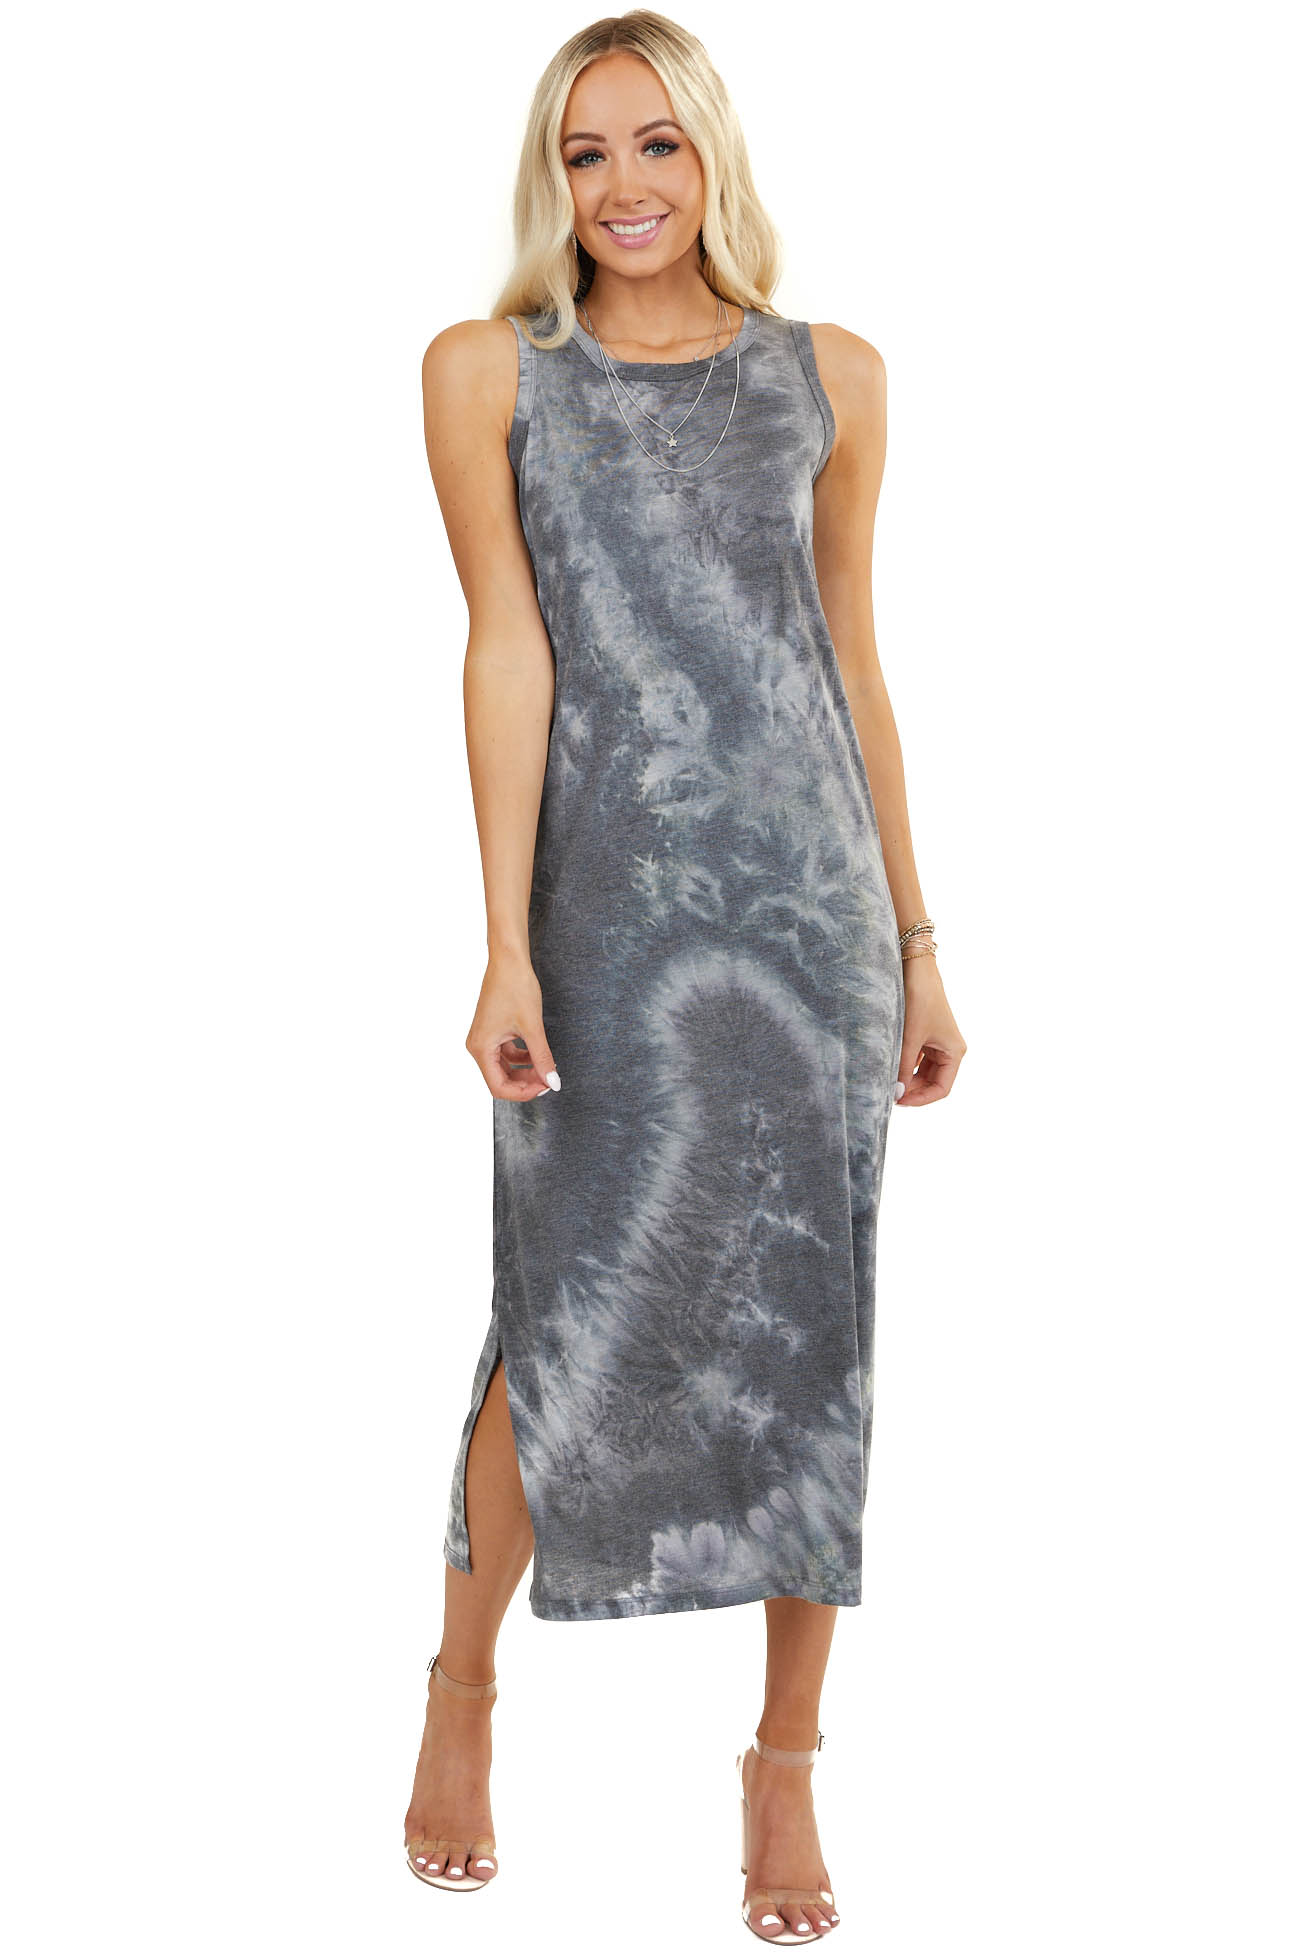 Charcoal Tie Dye Sleeveless Knit Dress with Side Slits